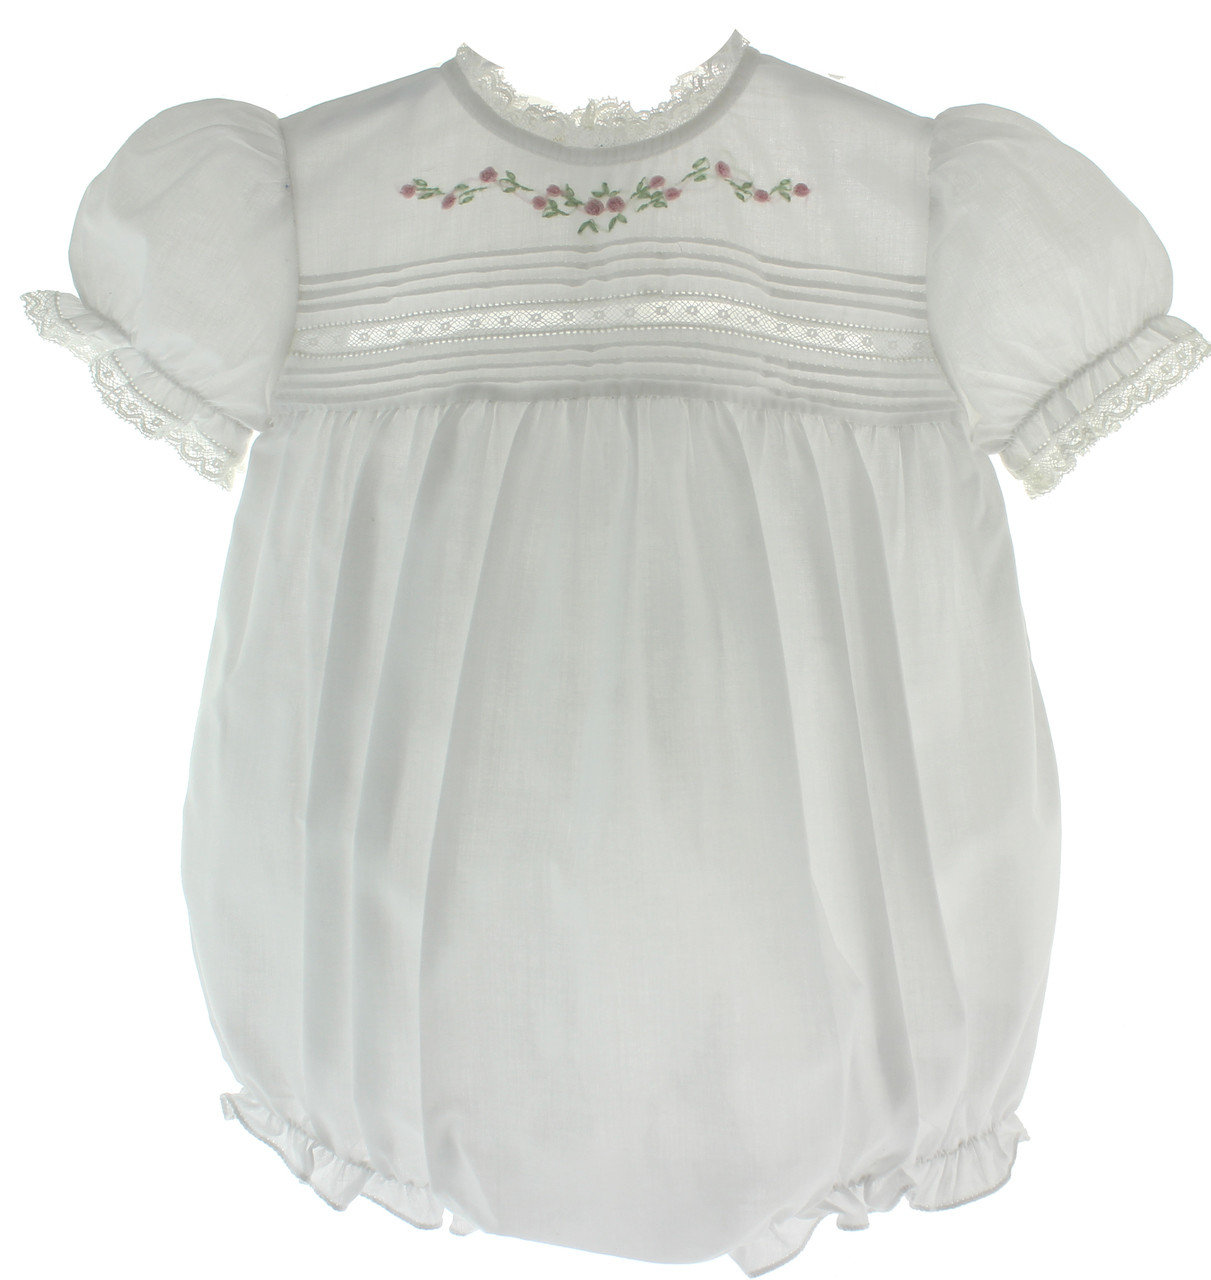 Infant Girls White Dressy Bubble Outfit Lace Trim Heirloom Baby Clothes